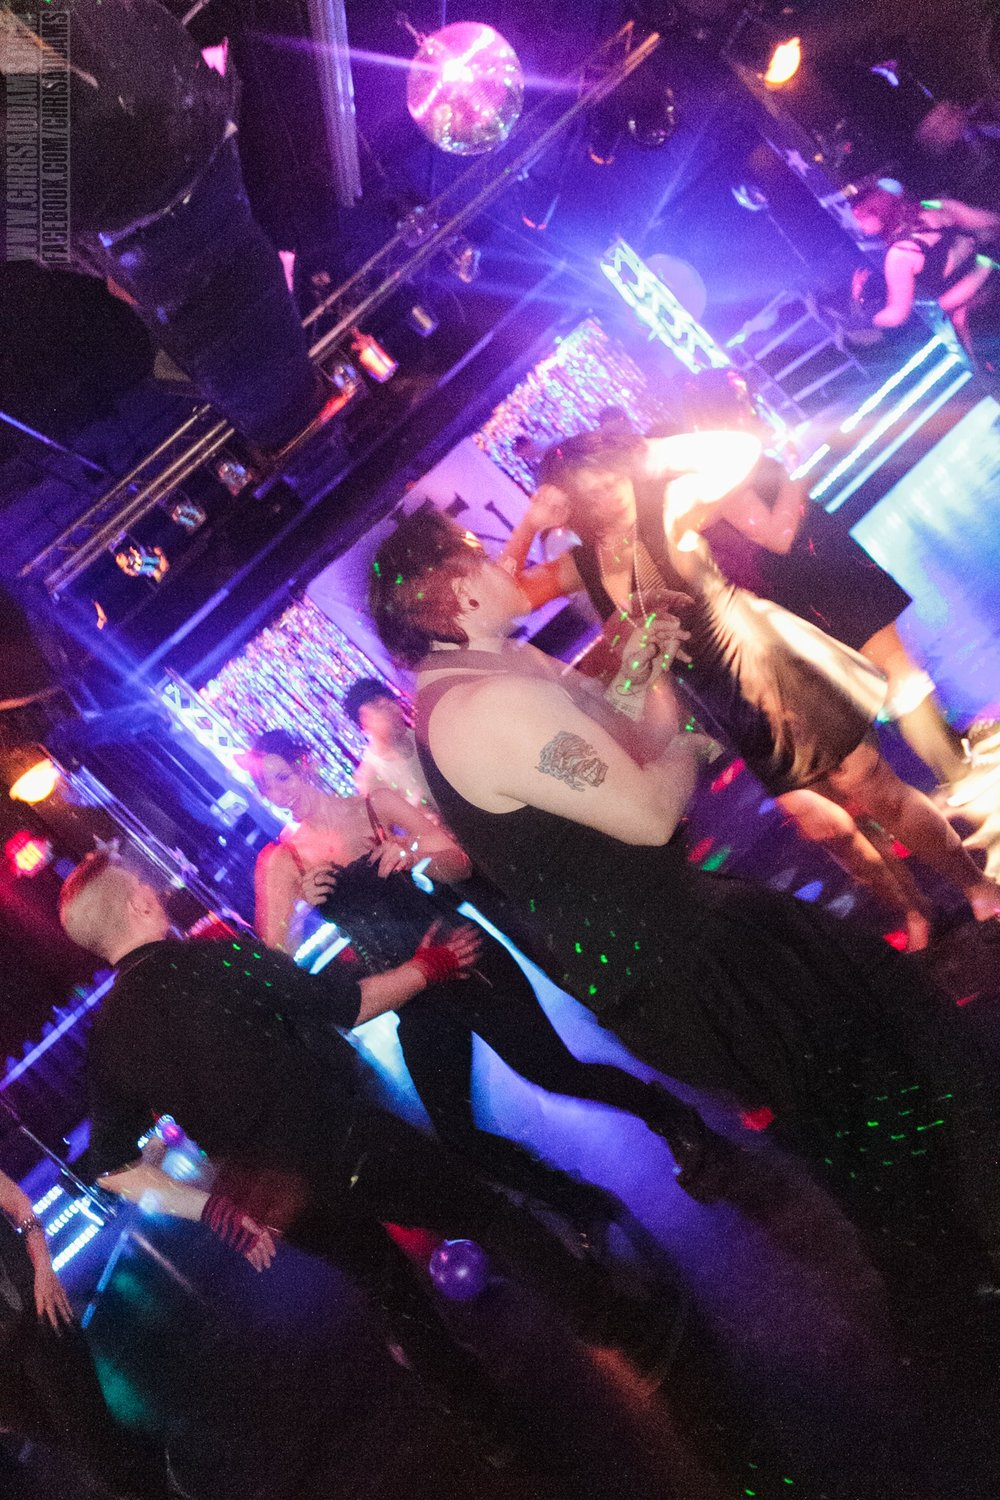 TheHavenClub-Goth-Industrial-Dance-Alternative-Northampton-MA (88).jpg